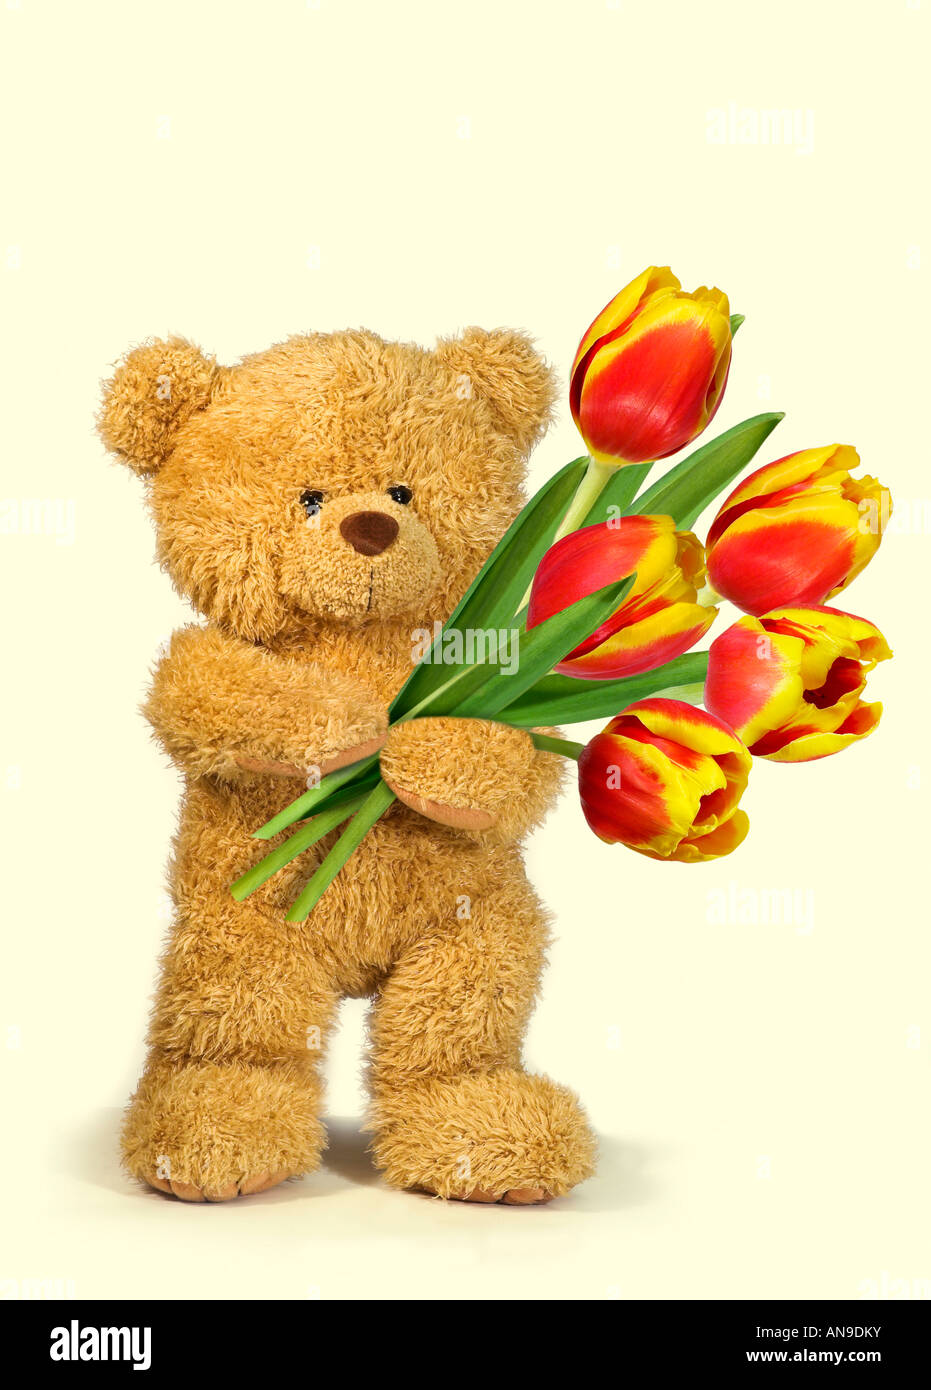 teddy bear with tulips - Stock Image